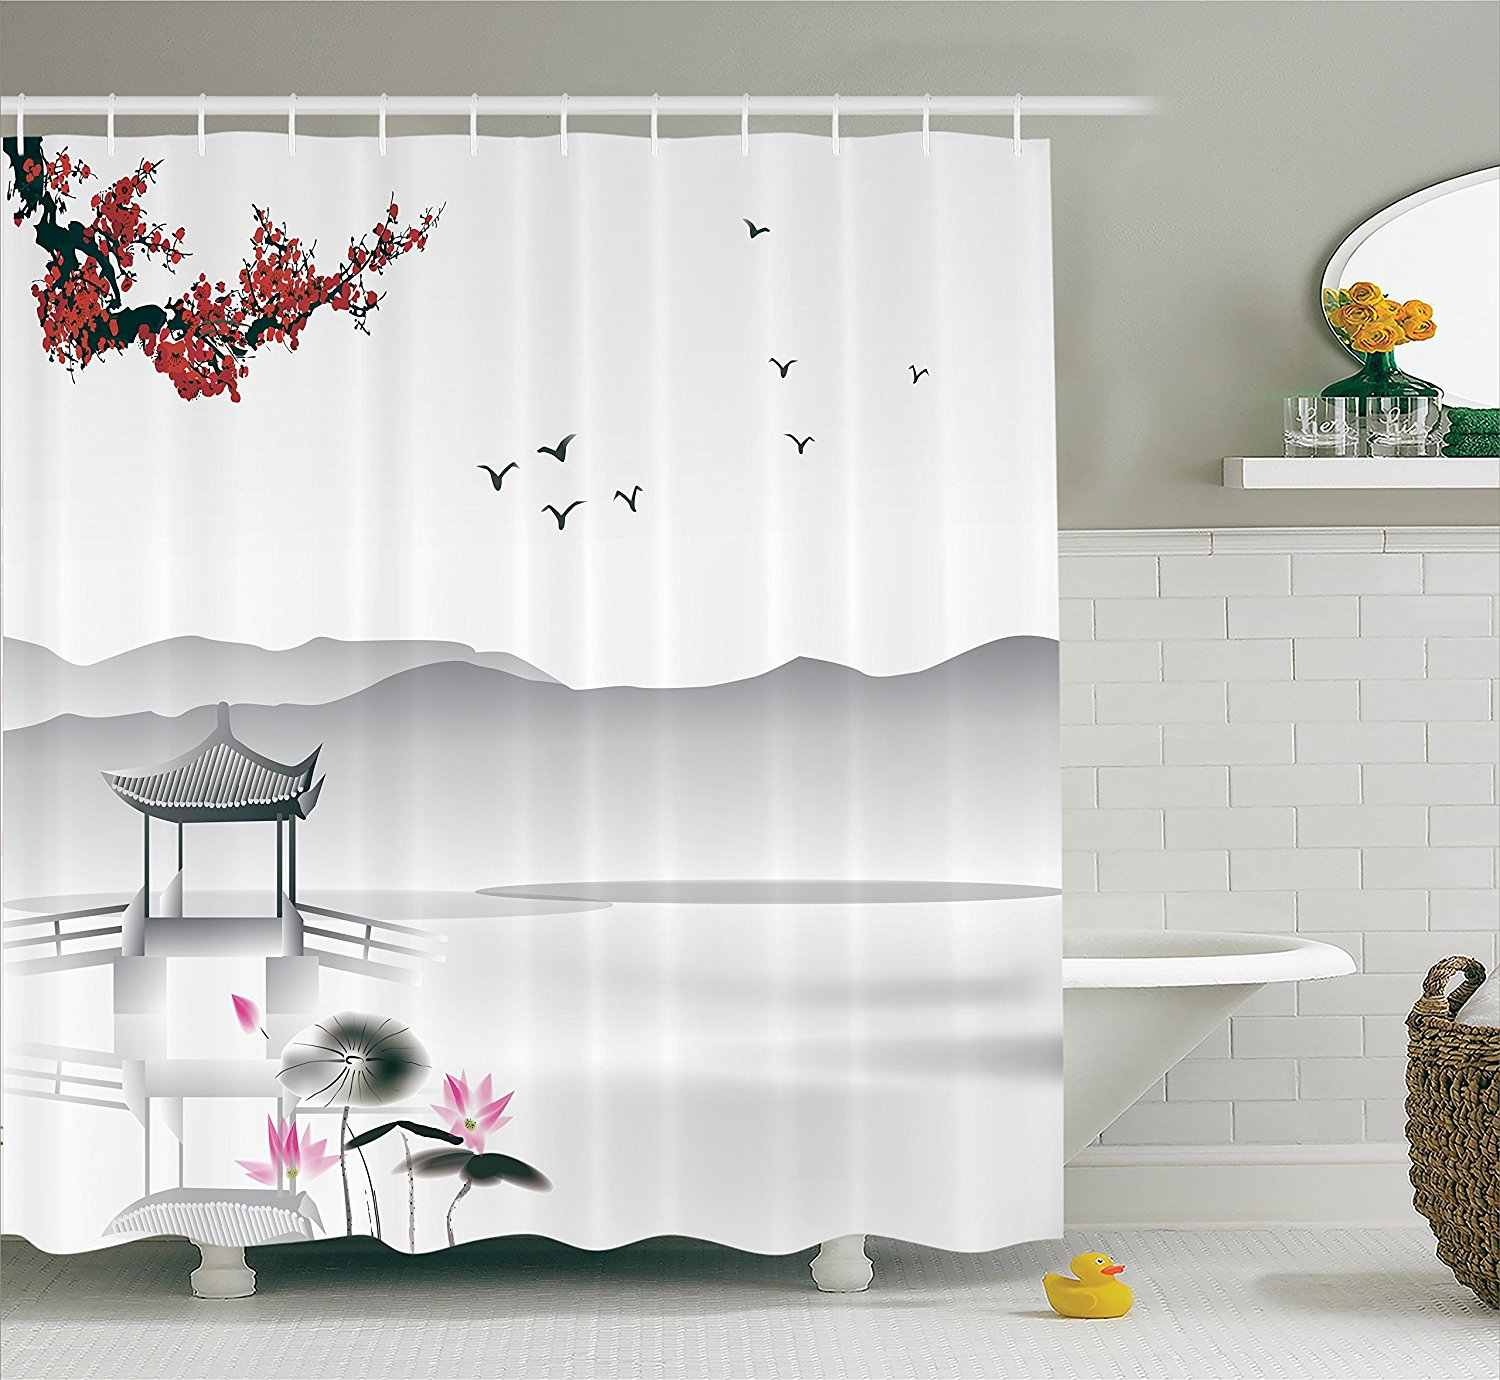 Japanese Asian Style Garden with Bird and Small Pavilion Over the Lake Lotus Waterlily, Polyester Fabric Bathroom Shower Curtain